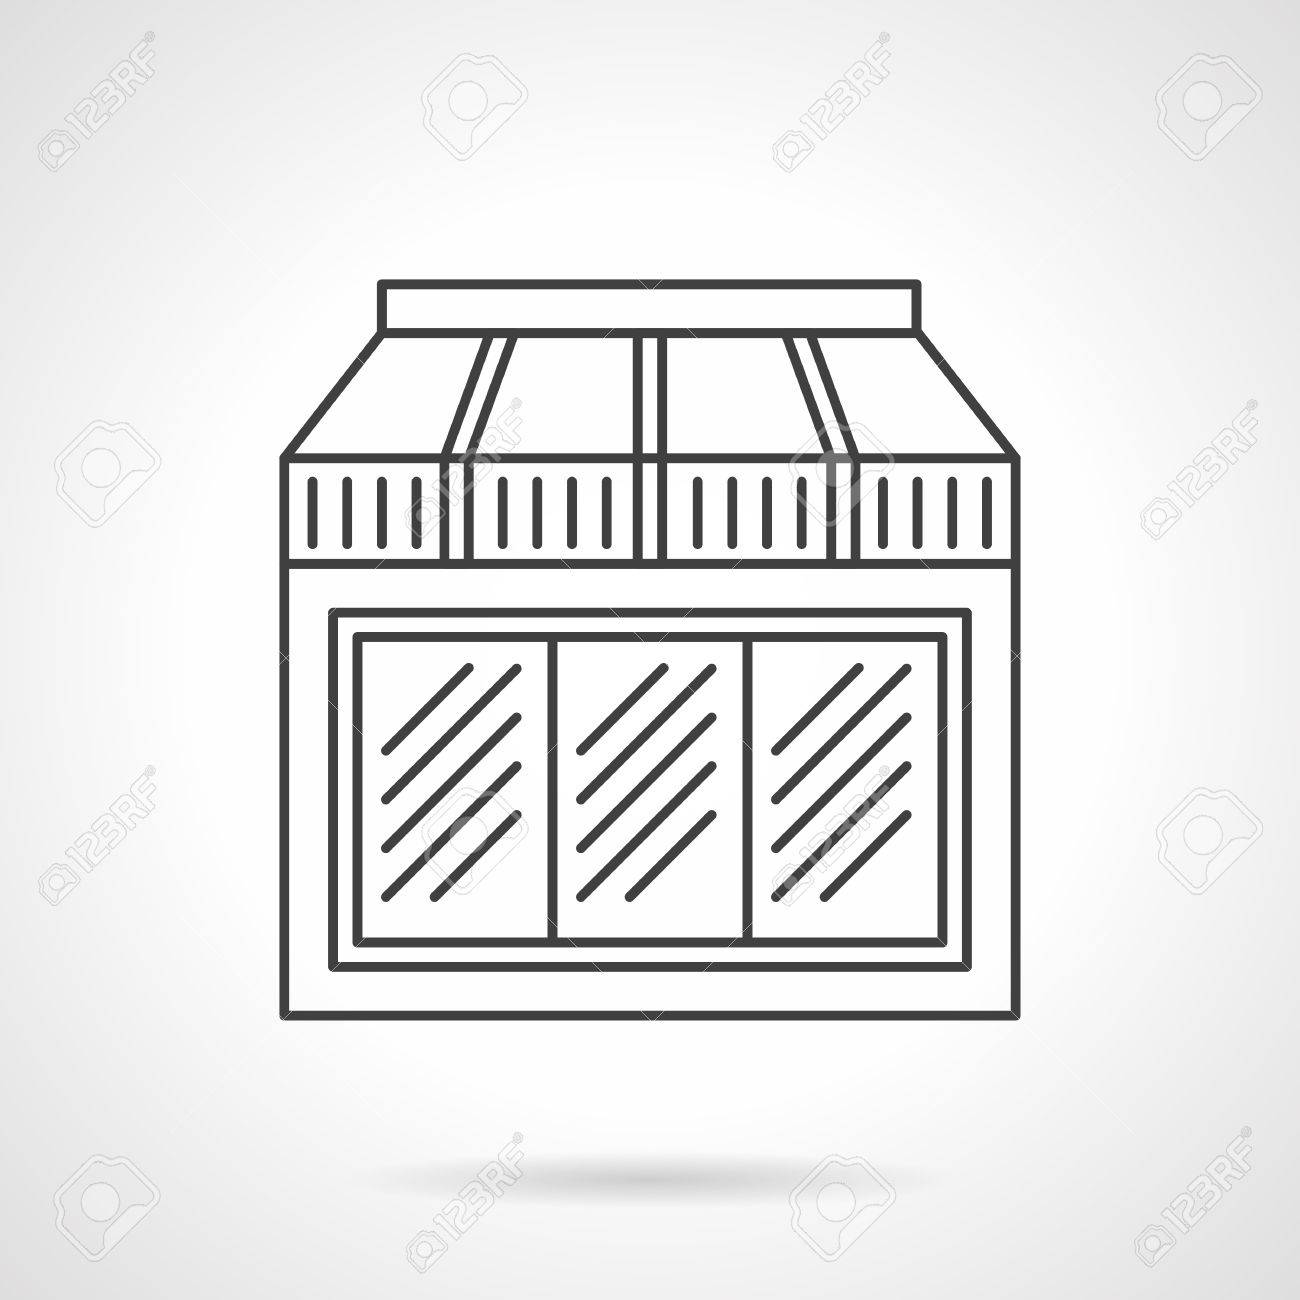 Exterior Window With Awning Facade Of Restaurant Cafe Or Store Royalty Free Cliparts Vectors And Stock Illustration Image 53356988